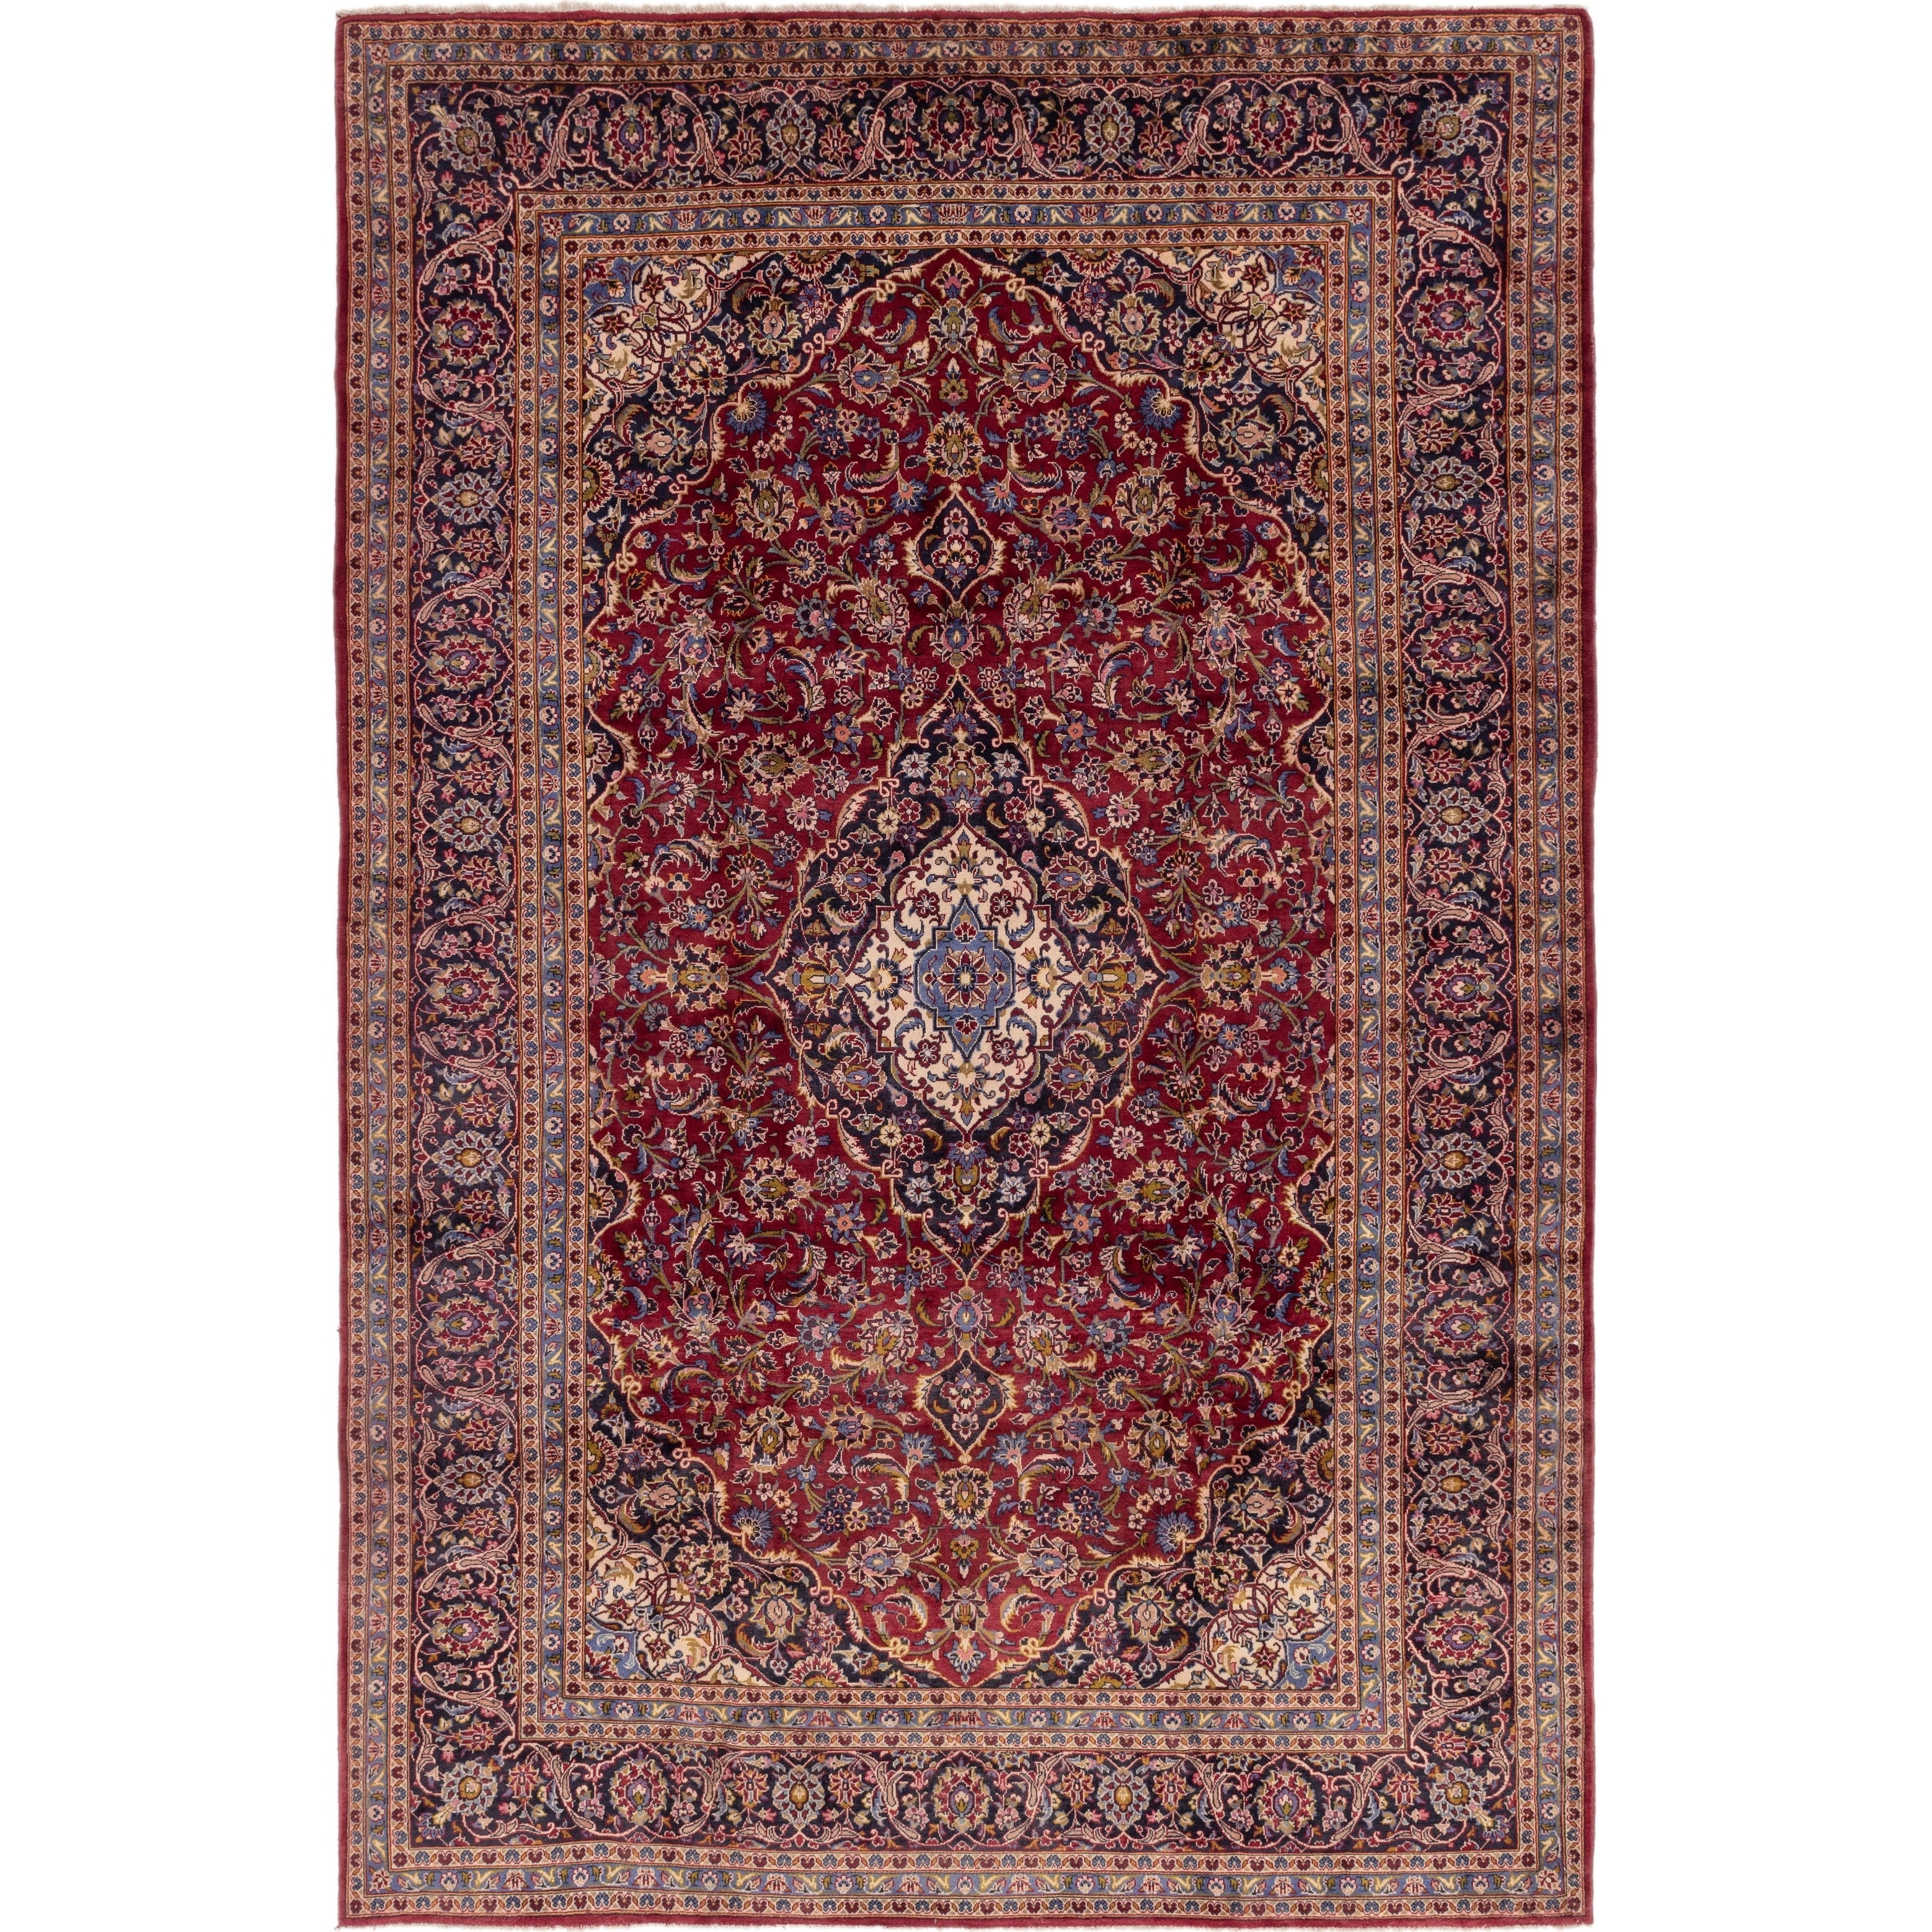 Hand Knotted Kashan Semi Antique Wool Area Rug - 9 6 x 14 (Red - 9 6 x 14)